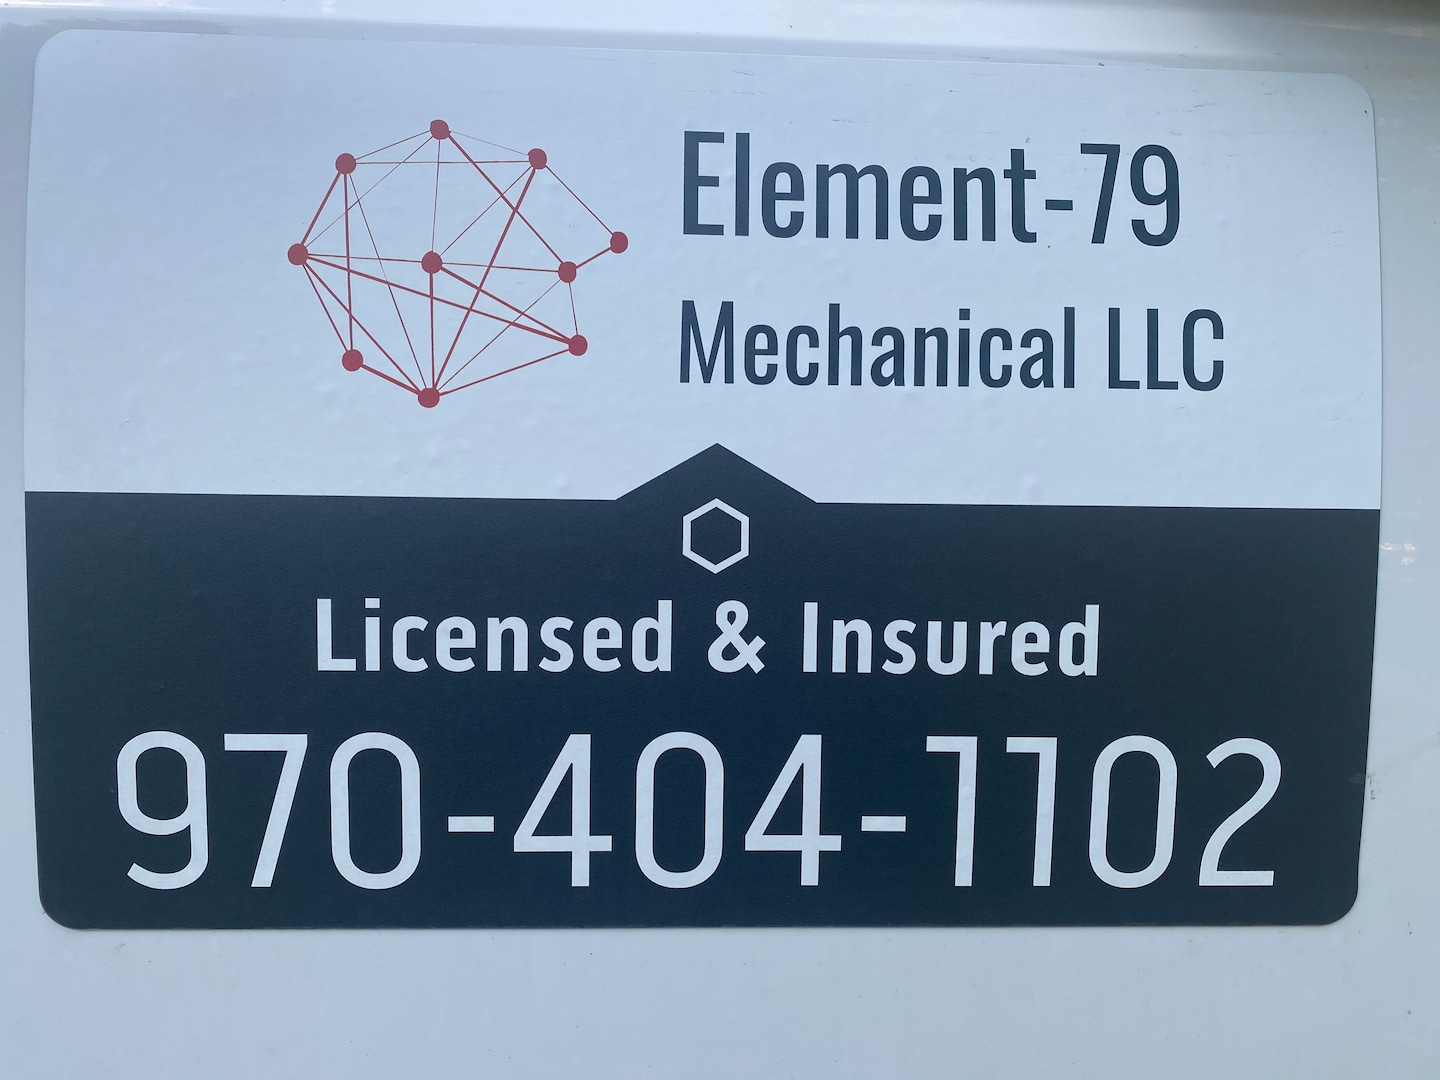 Element 79 Mechcial LLC